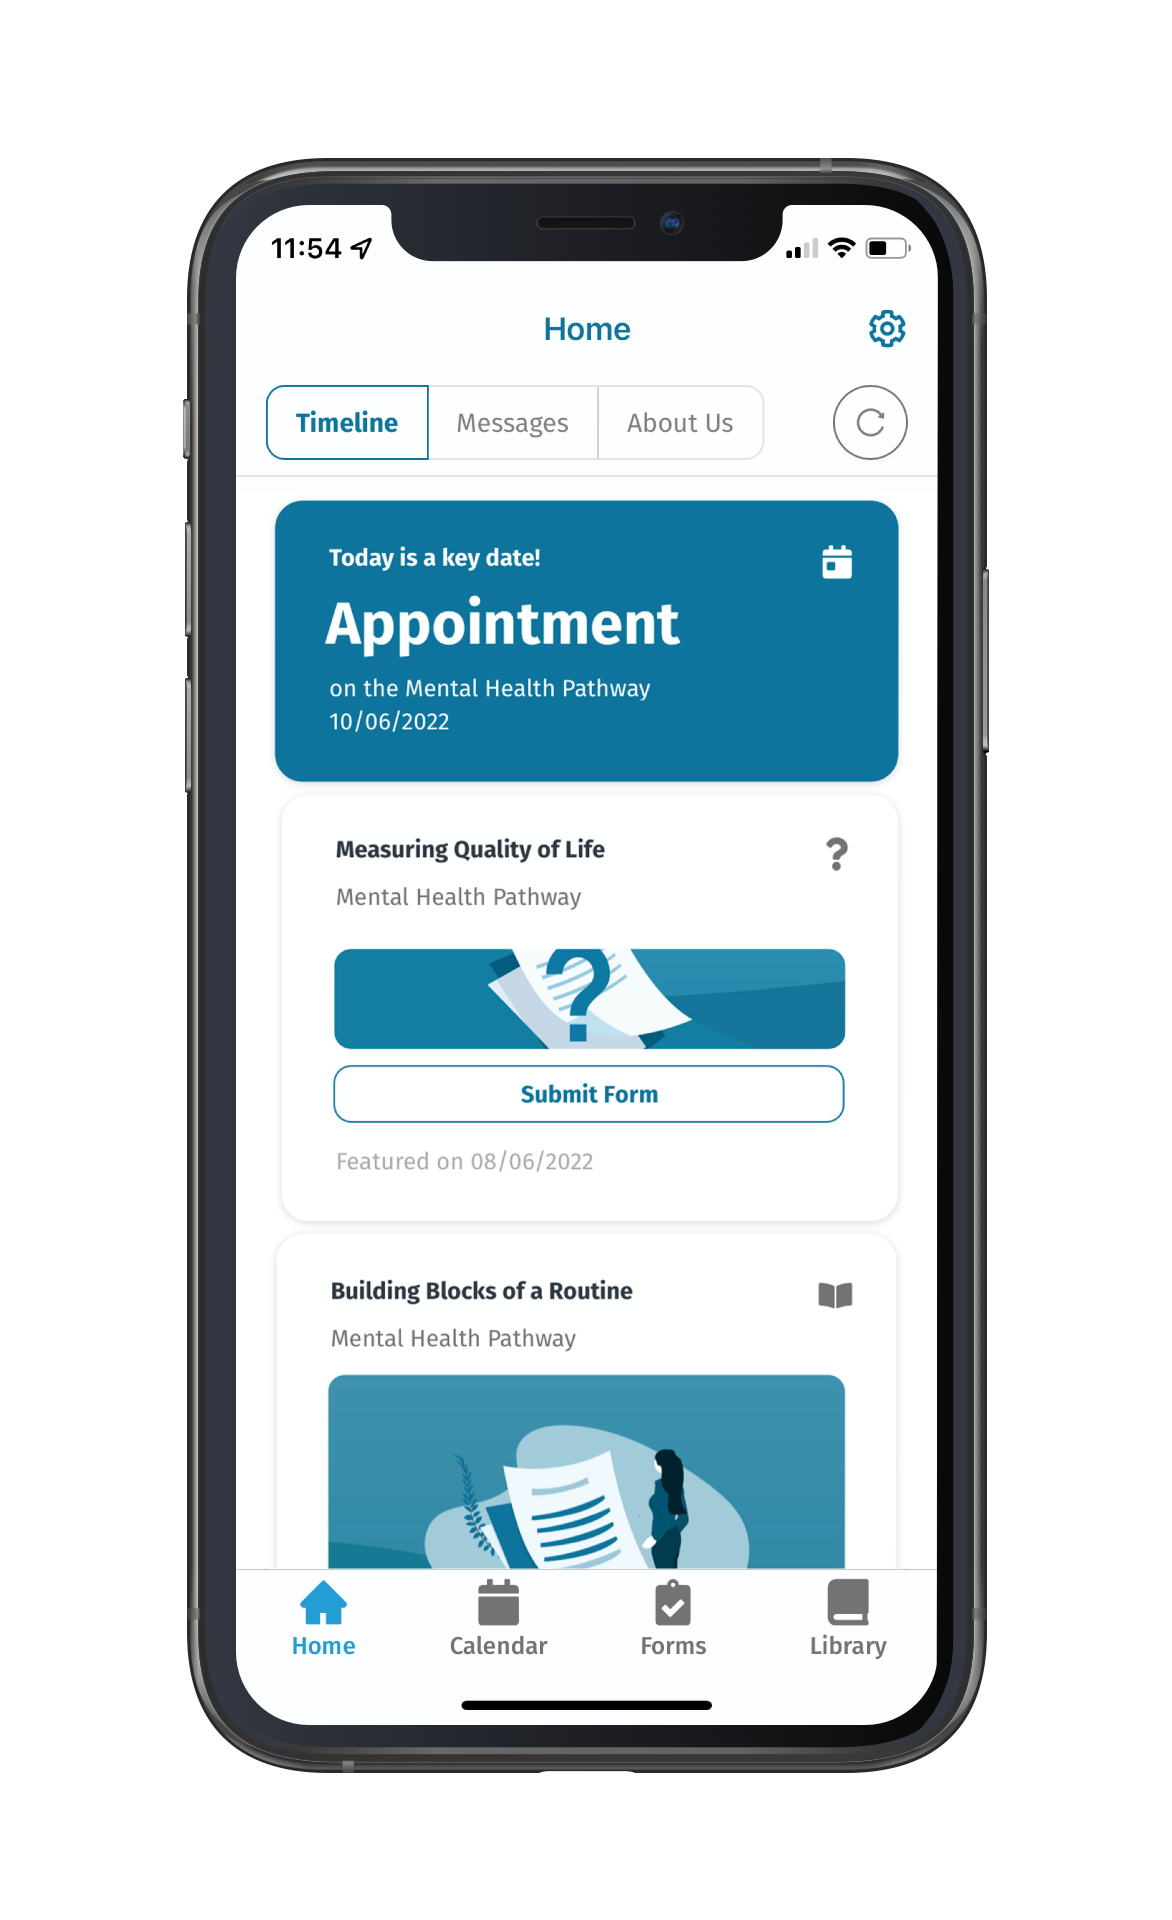 Example of the mobile app